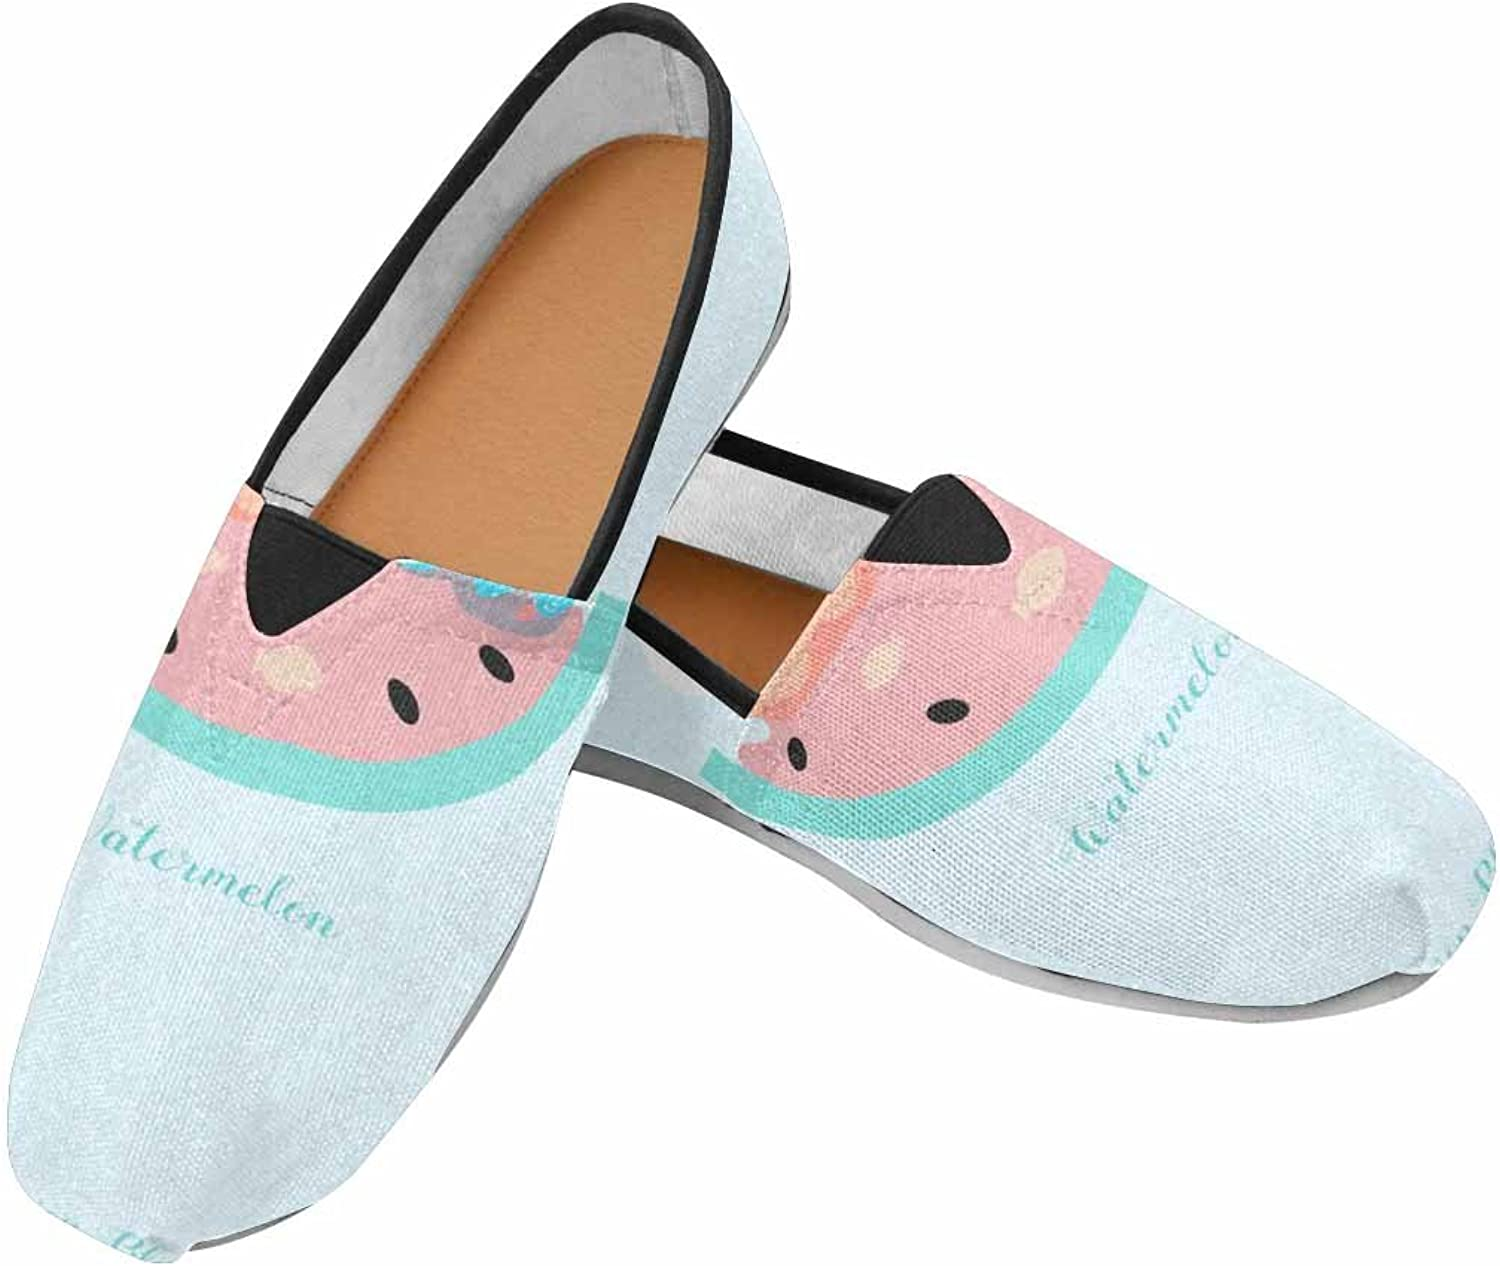 CoolBao Women's Minimalist Espadrilles Flats with Padded Insole